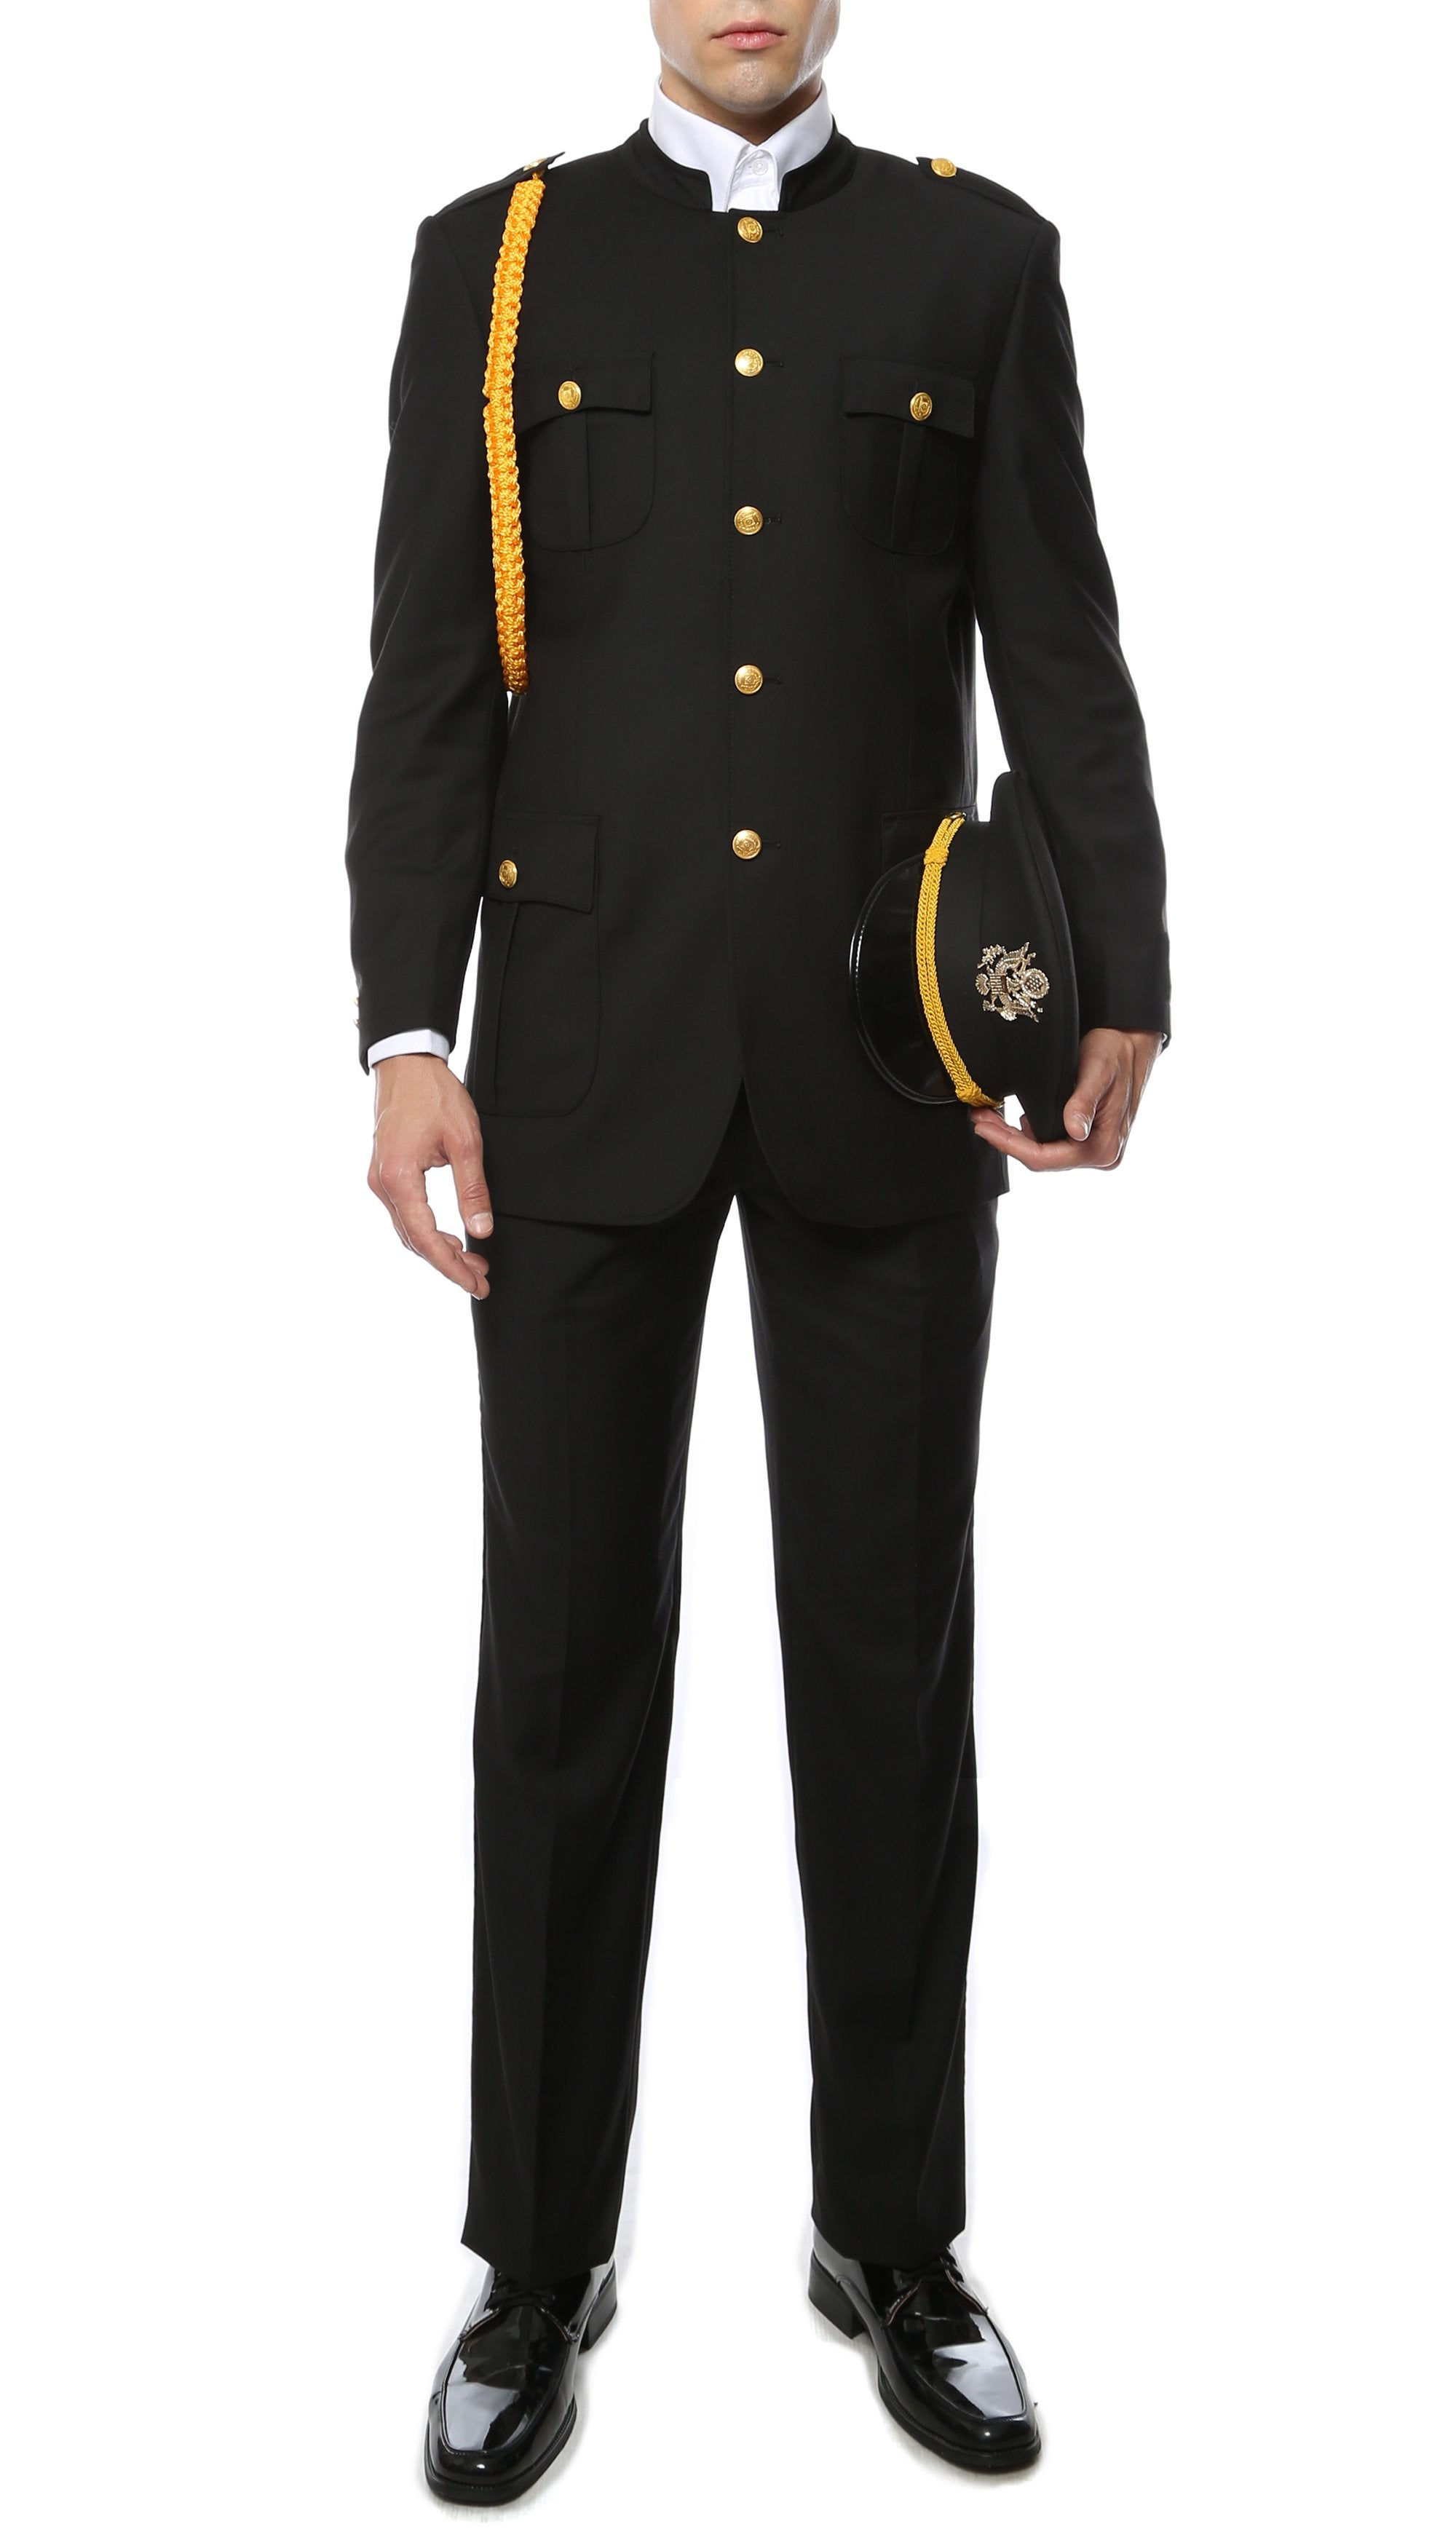 Ferrecci Mens Black Military Cadet Uniform - Giorgio's Menswear